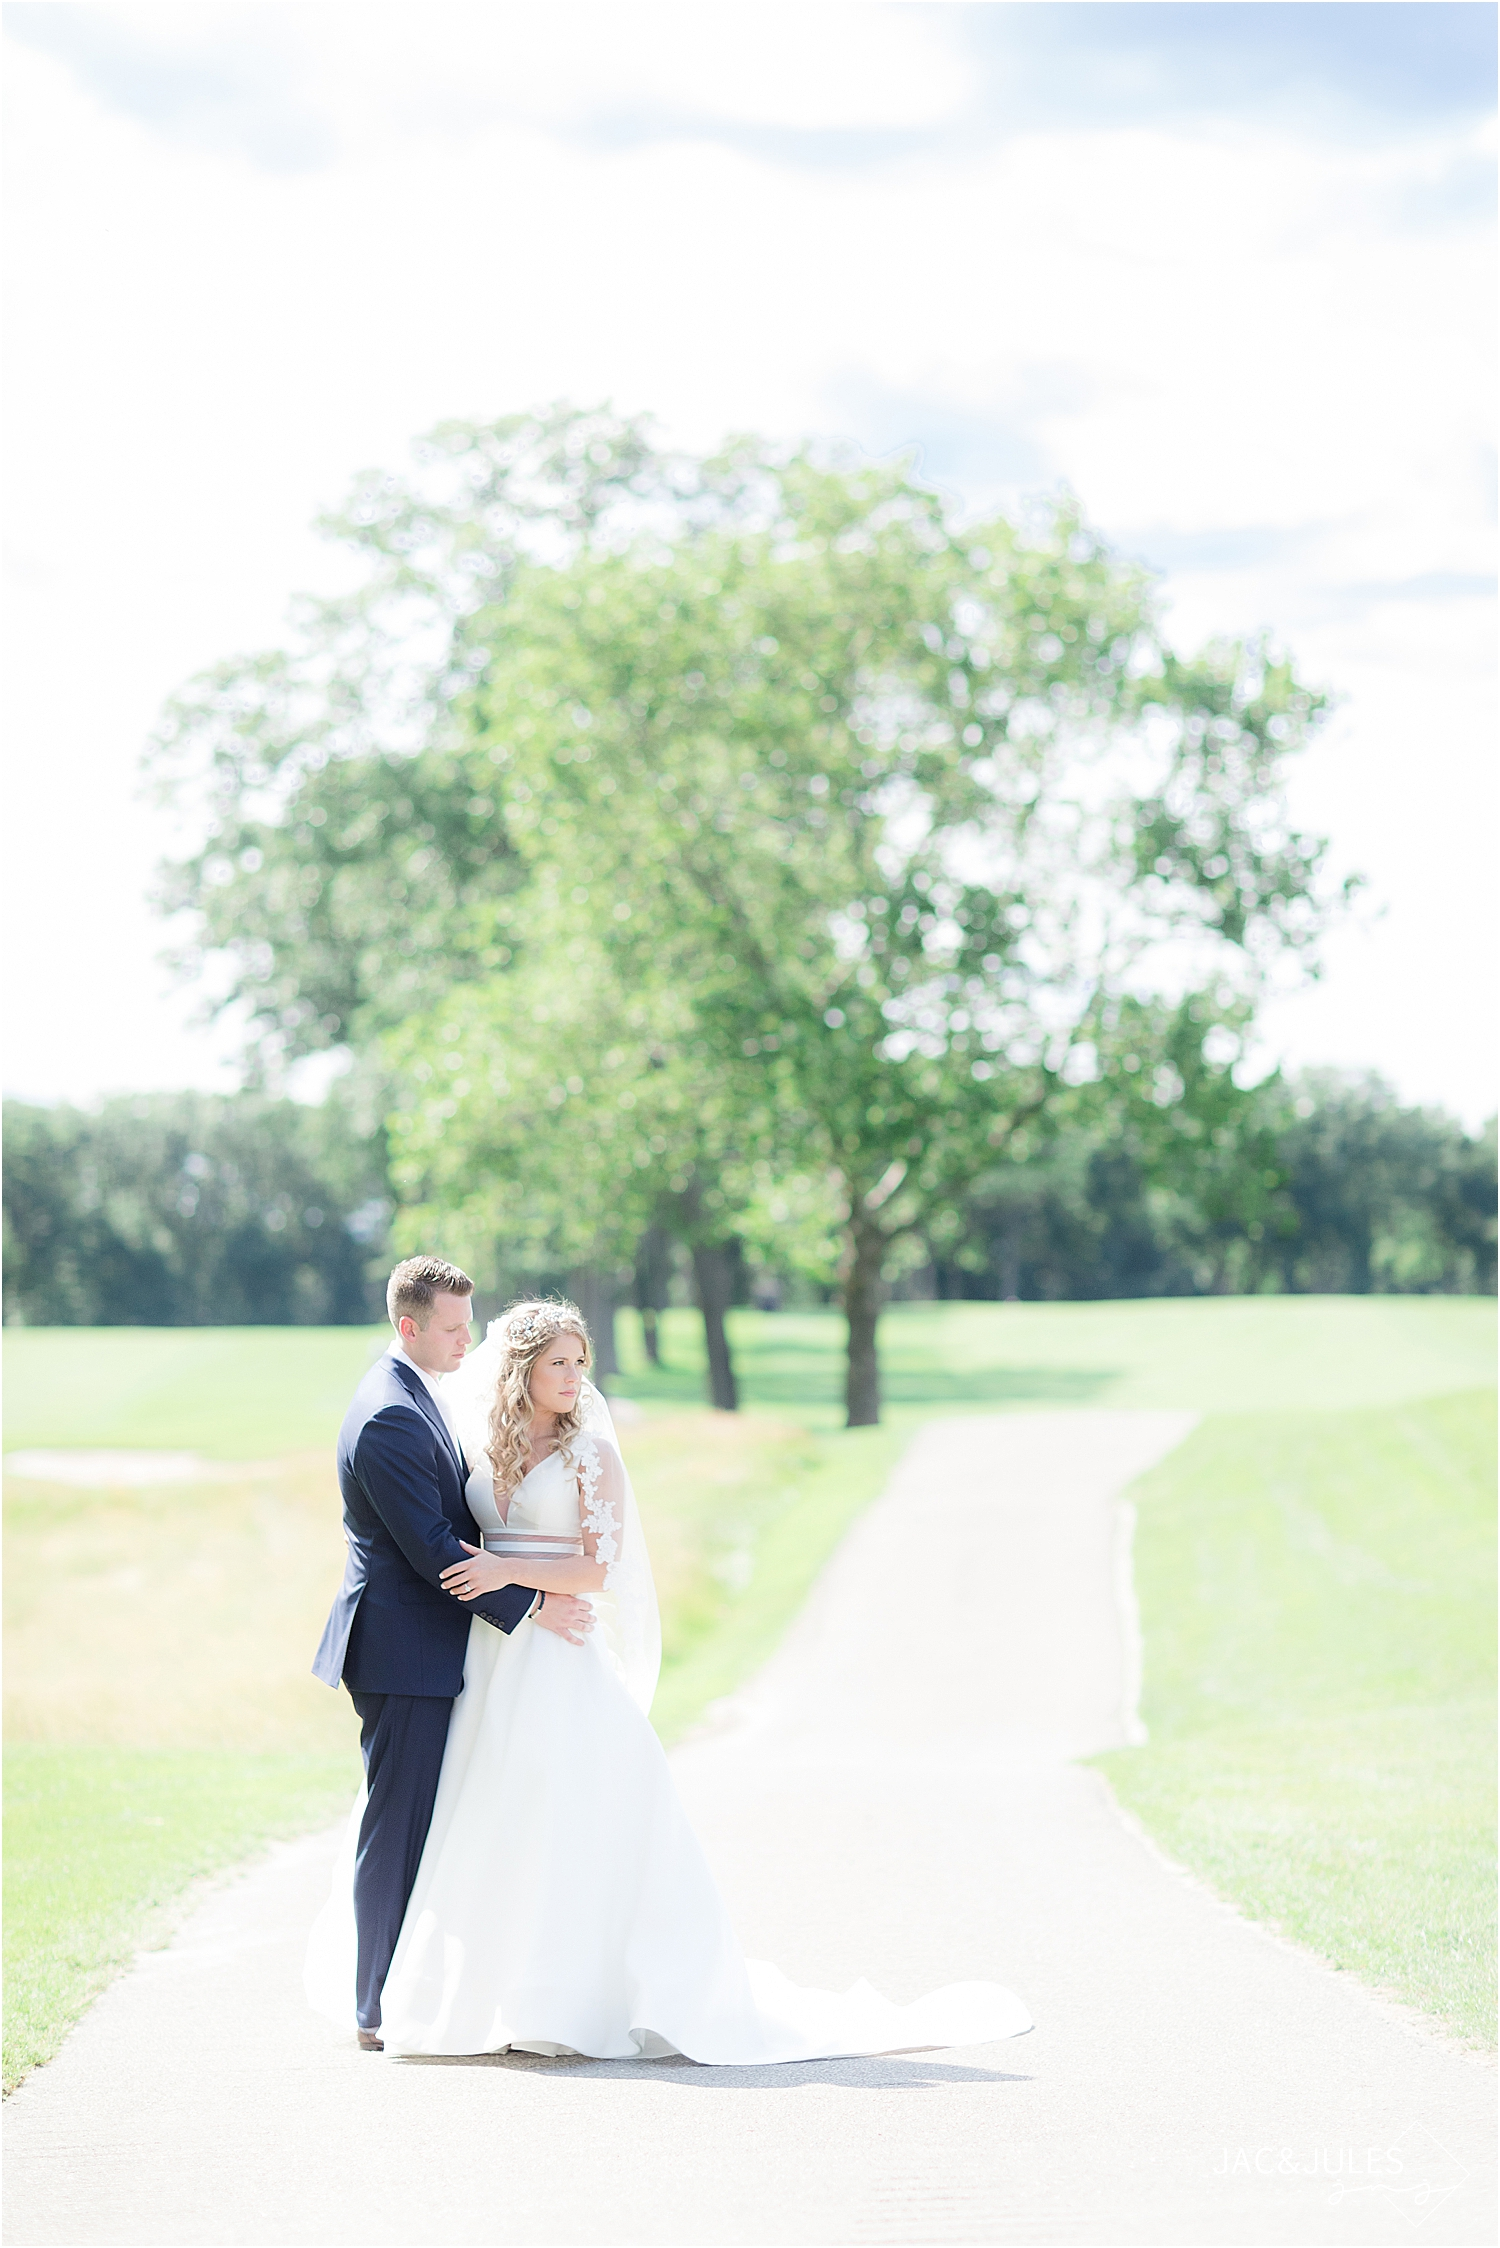 light and airy wedding portrait of bride and groom at north jersey country club